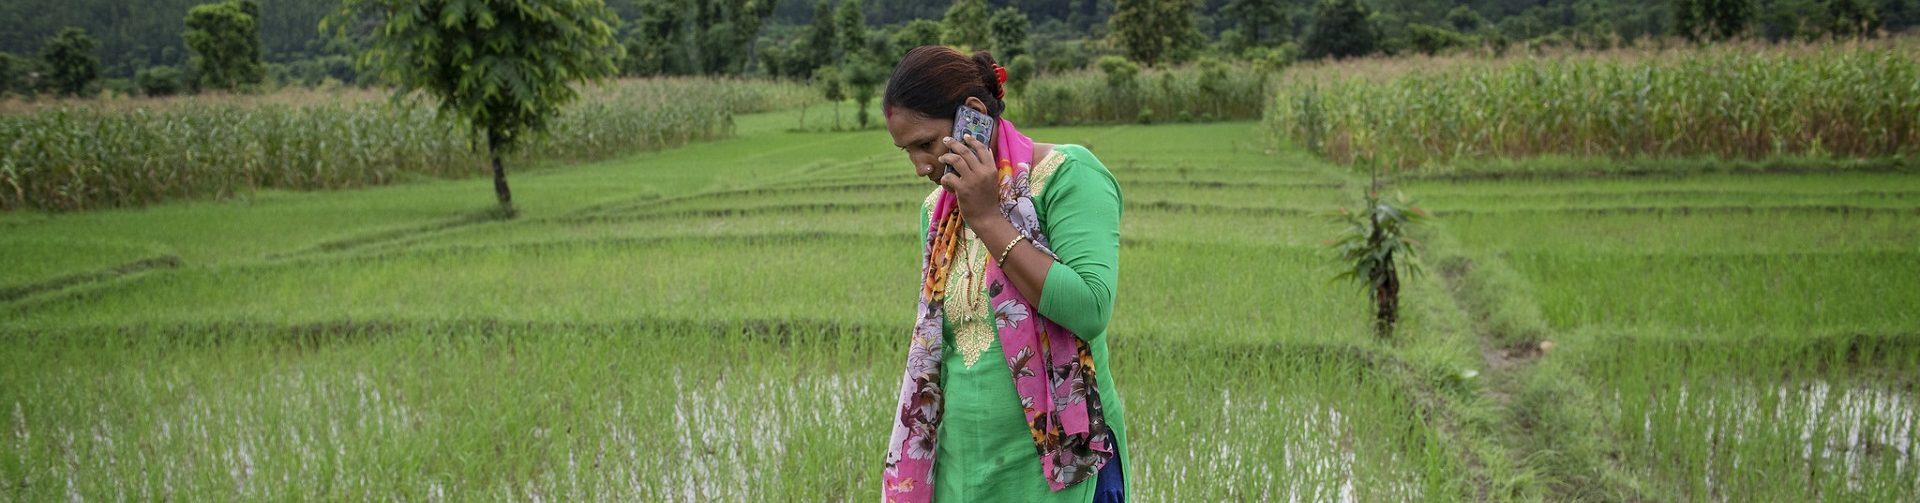 Using mobile phones for survey research in the time of COVID-19 lockdowns and beyond